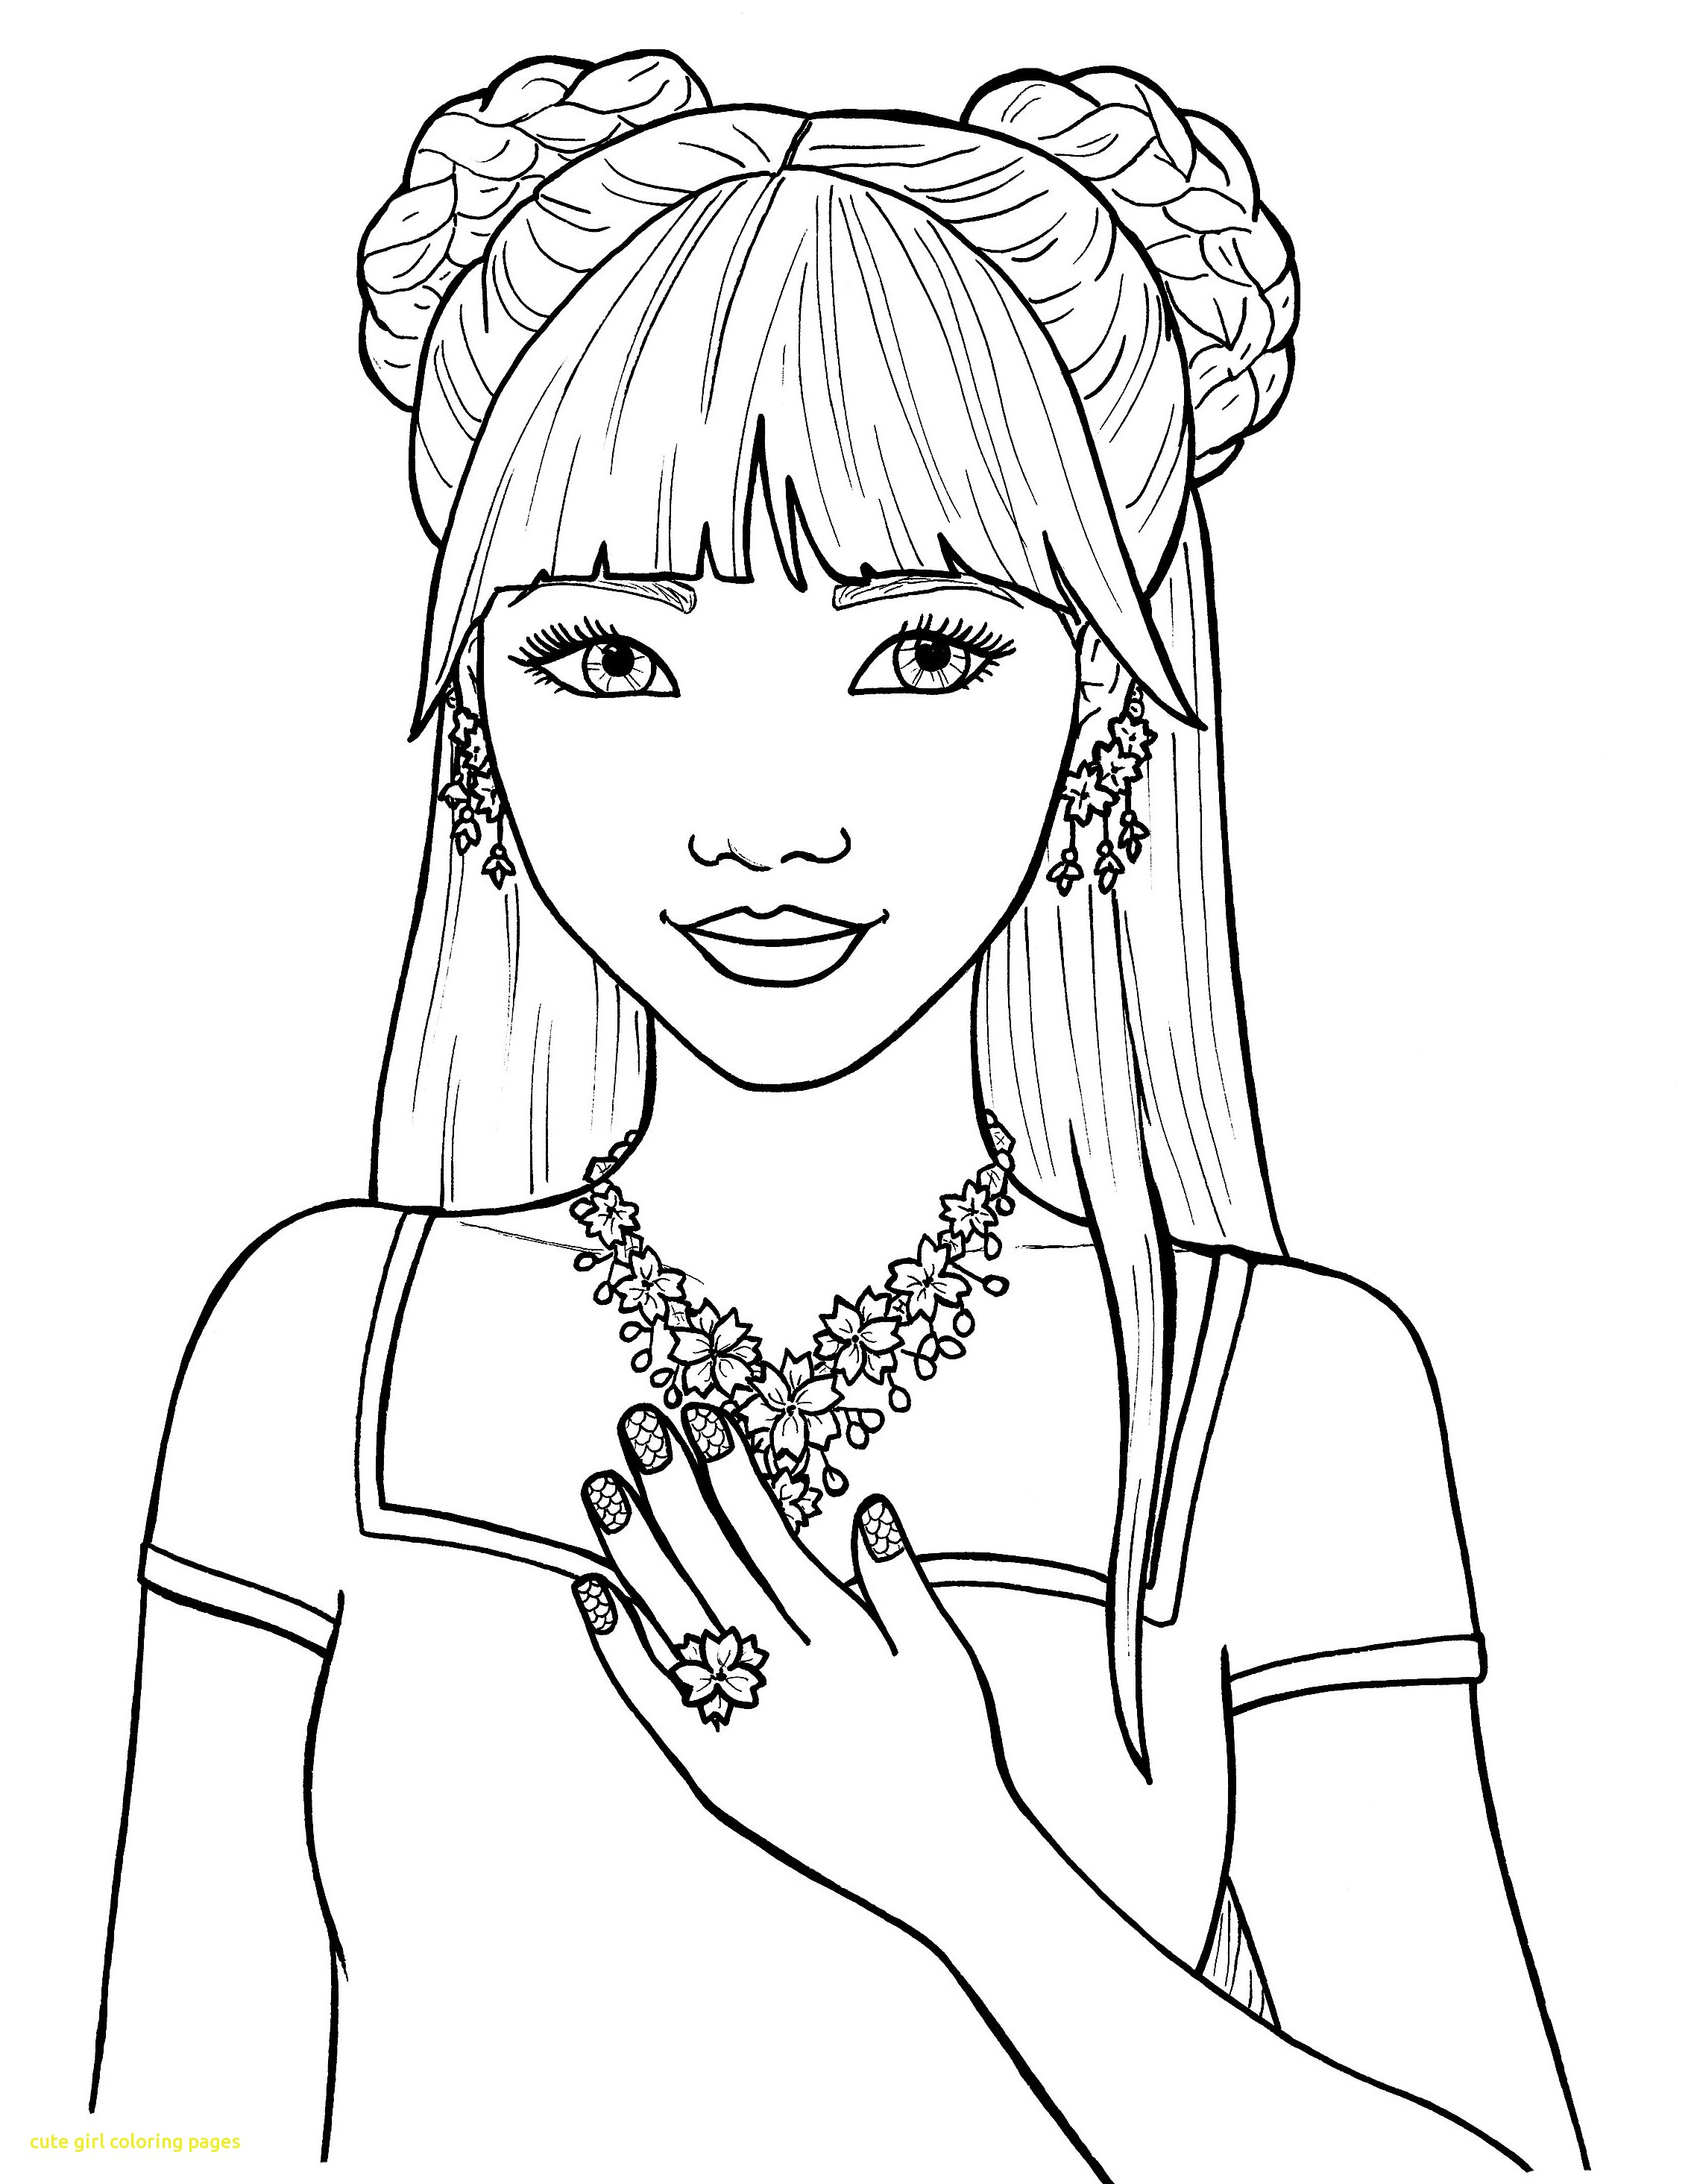 coloring pictures people adult coloring page girl portrait and clothes colouring coloring people pictures